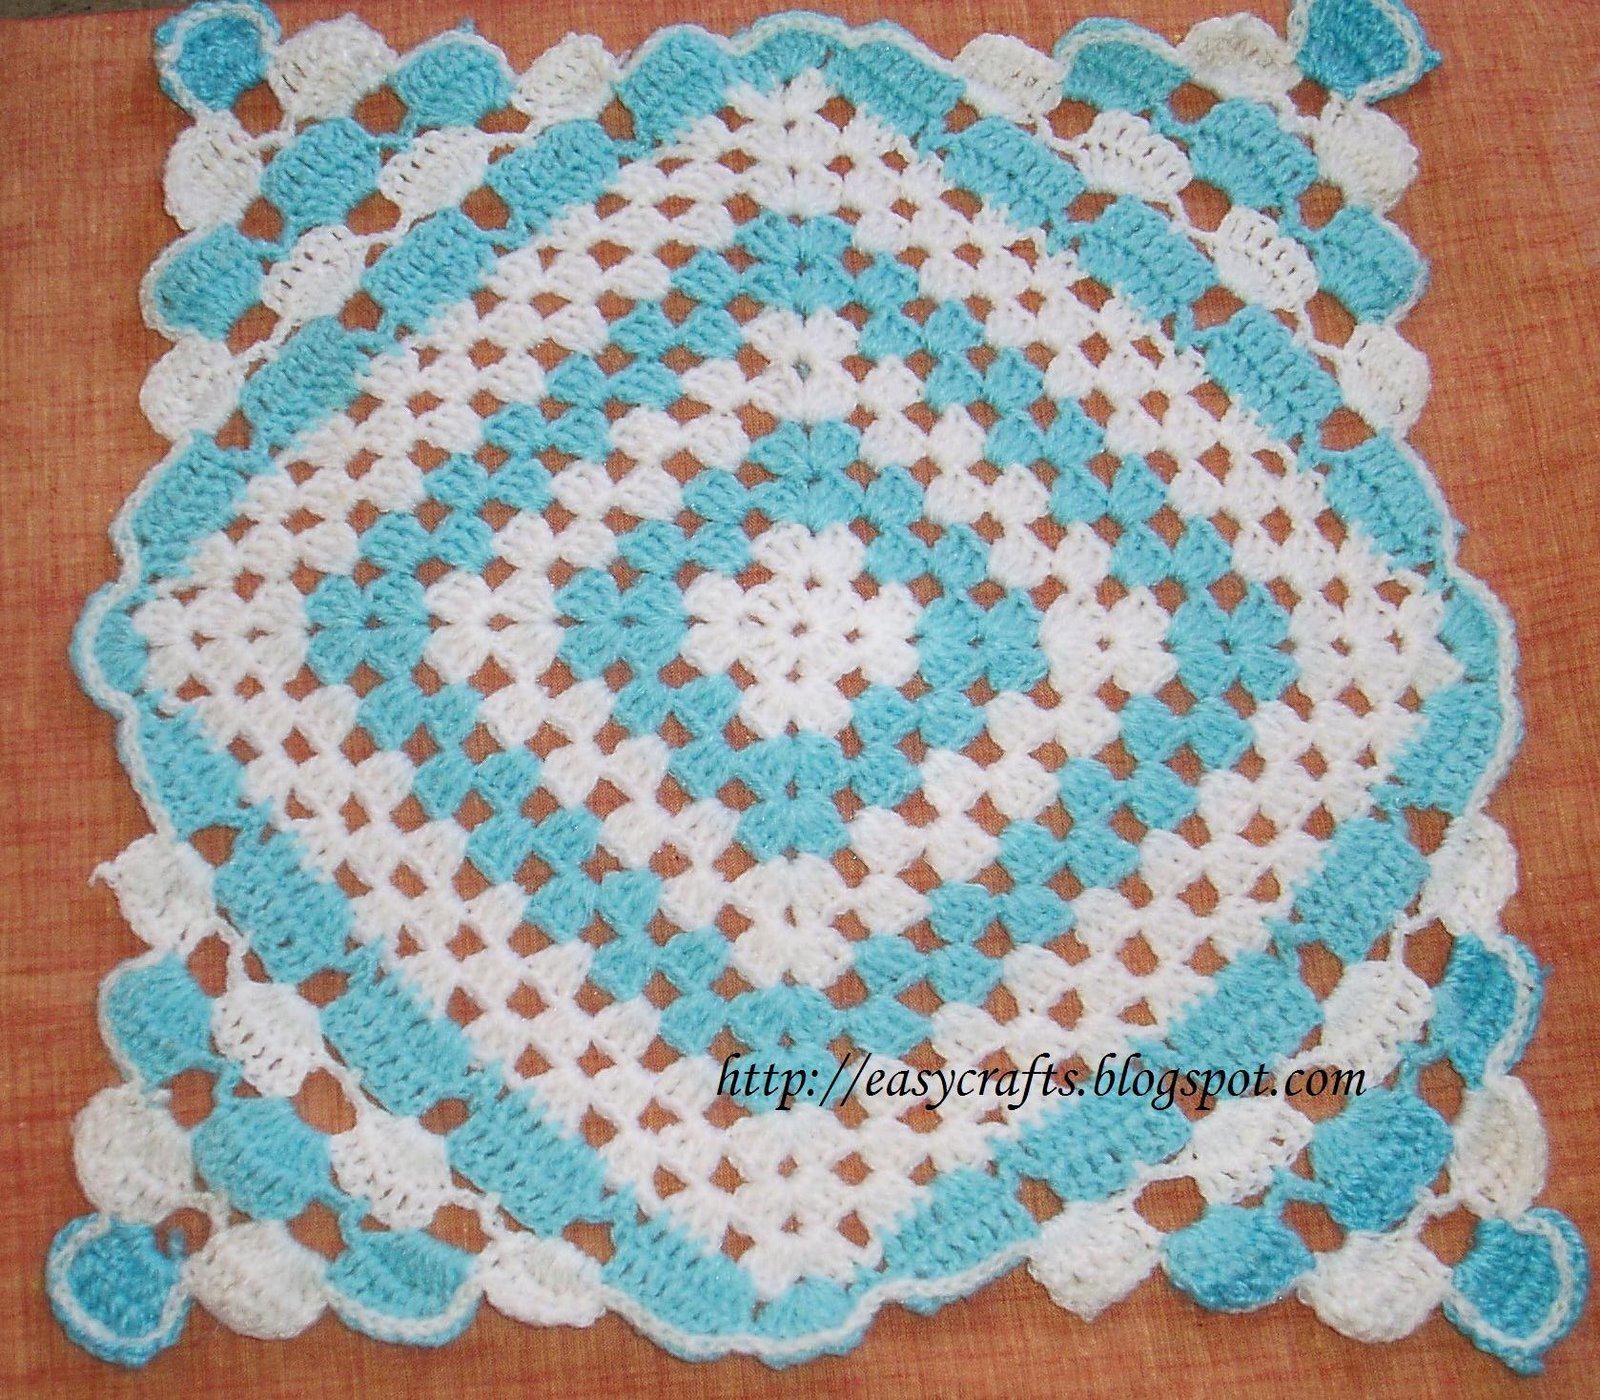 Free Crochet Granny Square Patterns For Beginners : Easy Crafts - Explore your creativity: Crochet Square pattern